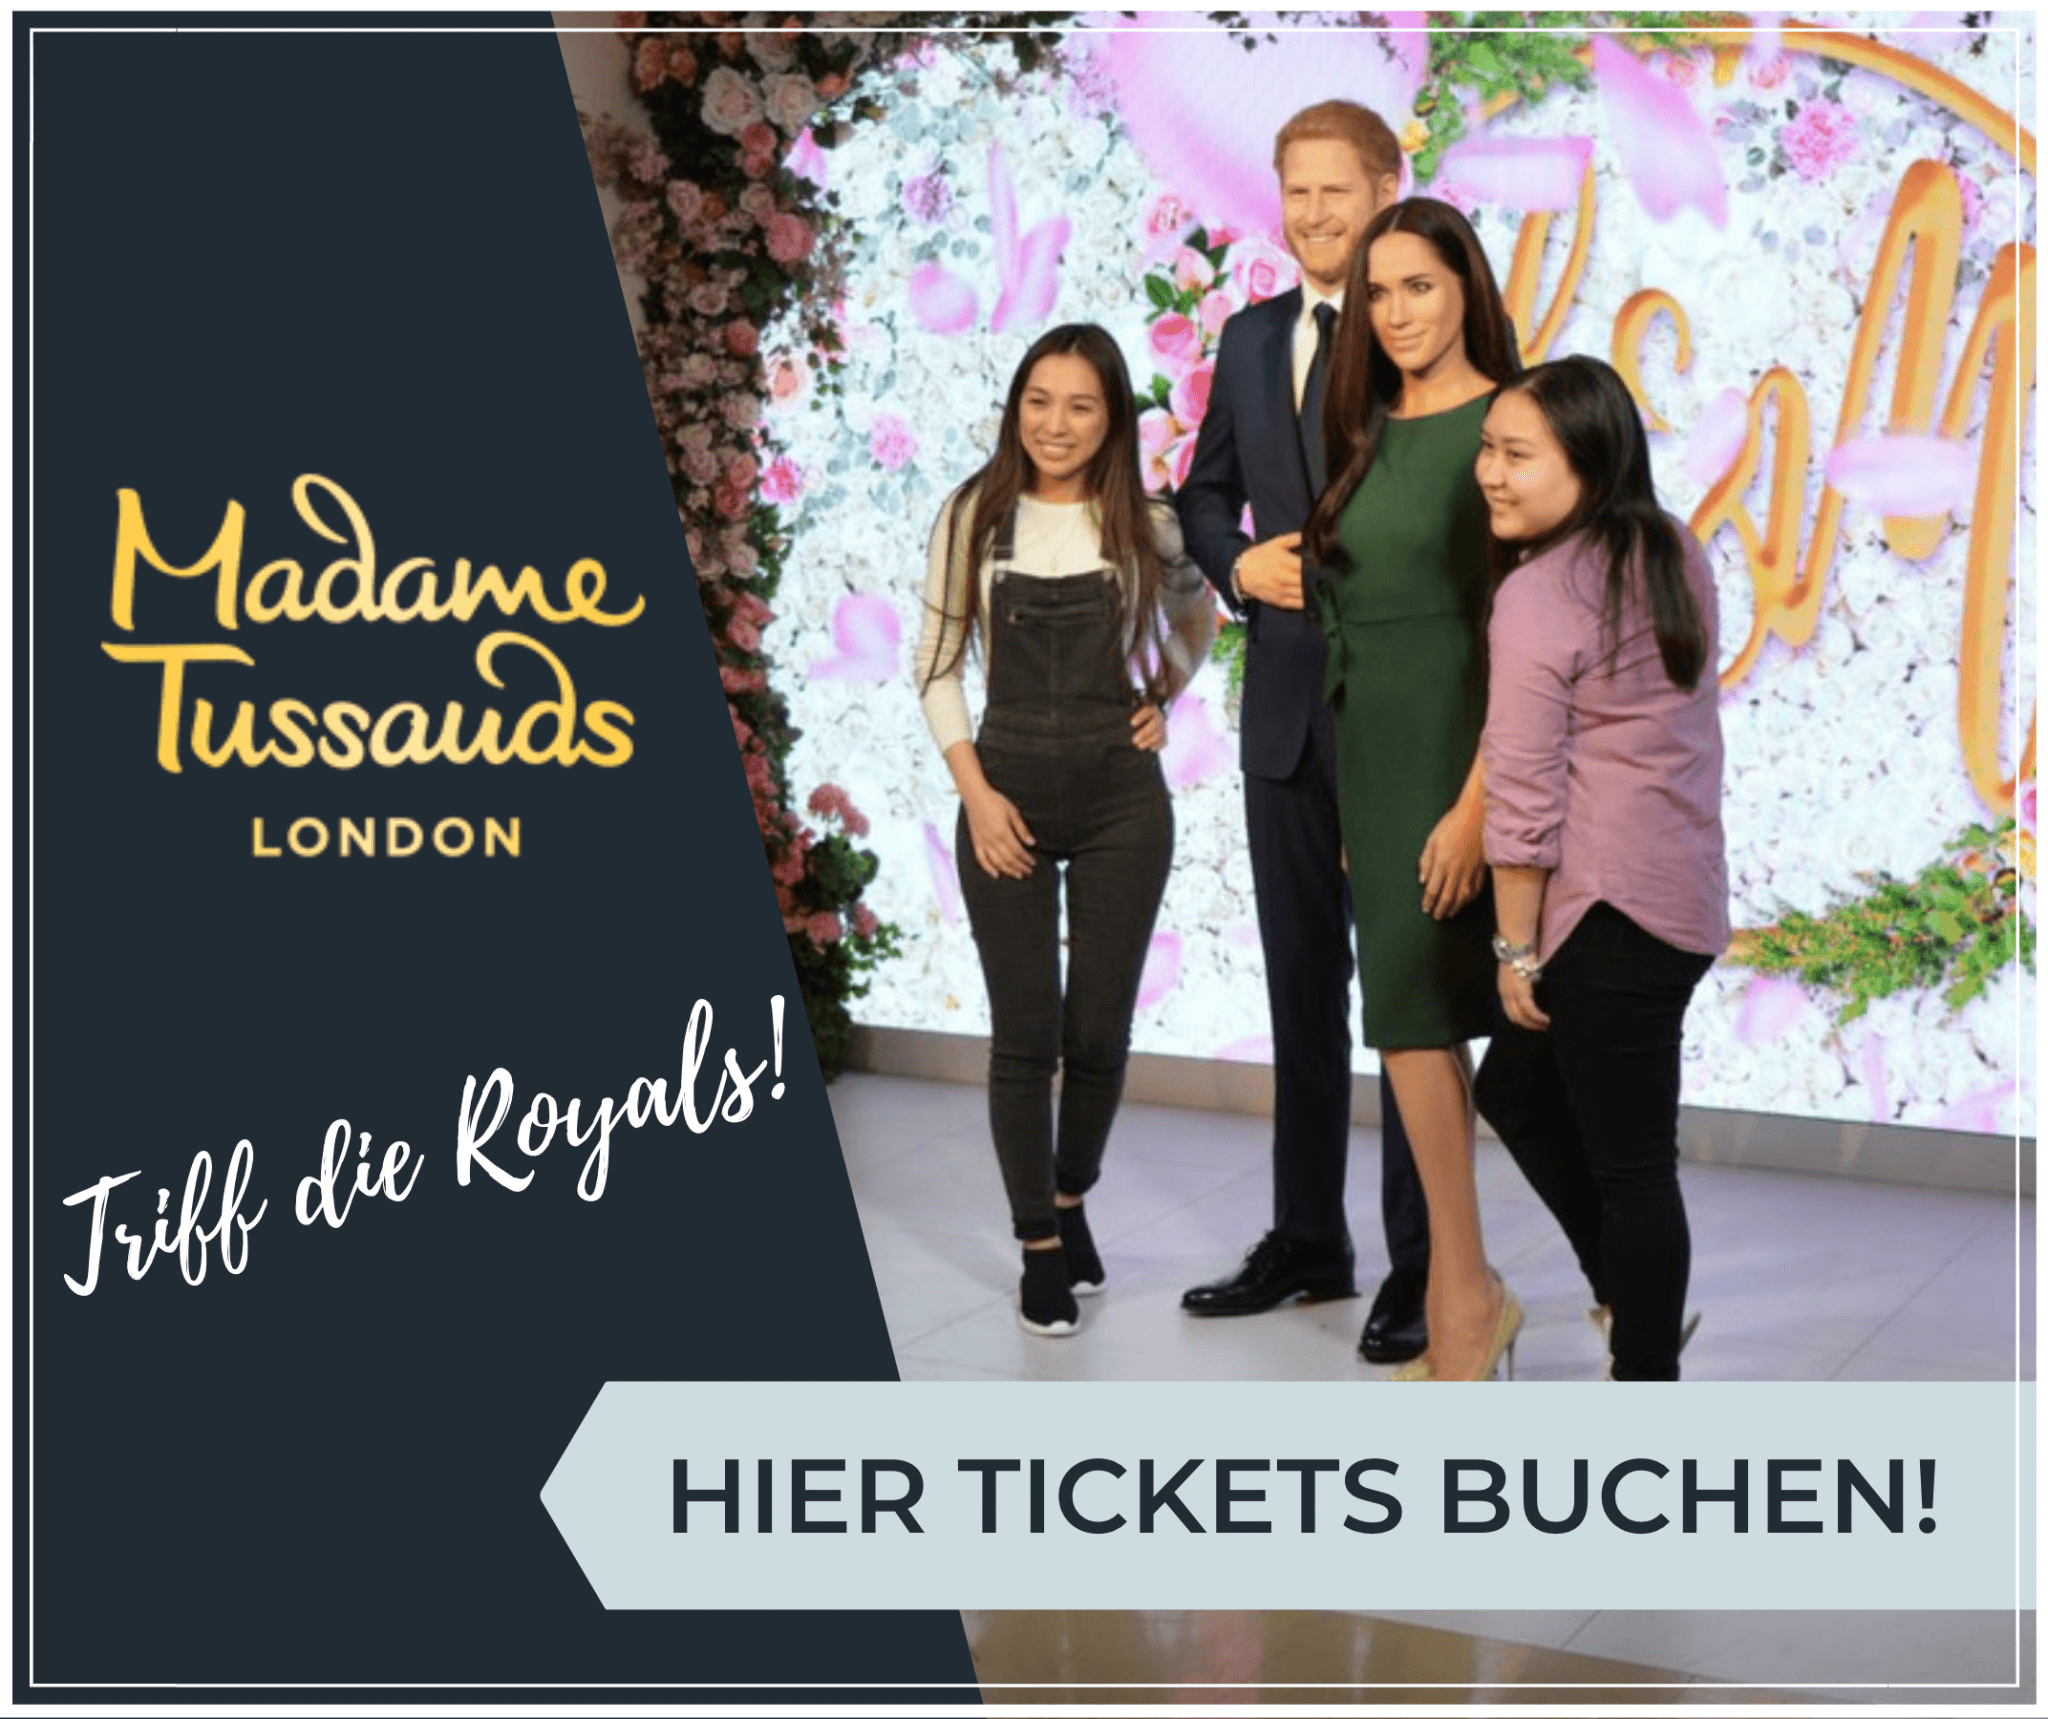 Madame Tussaud's London Tickets buchen